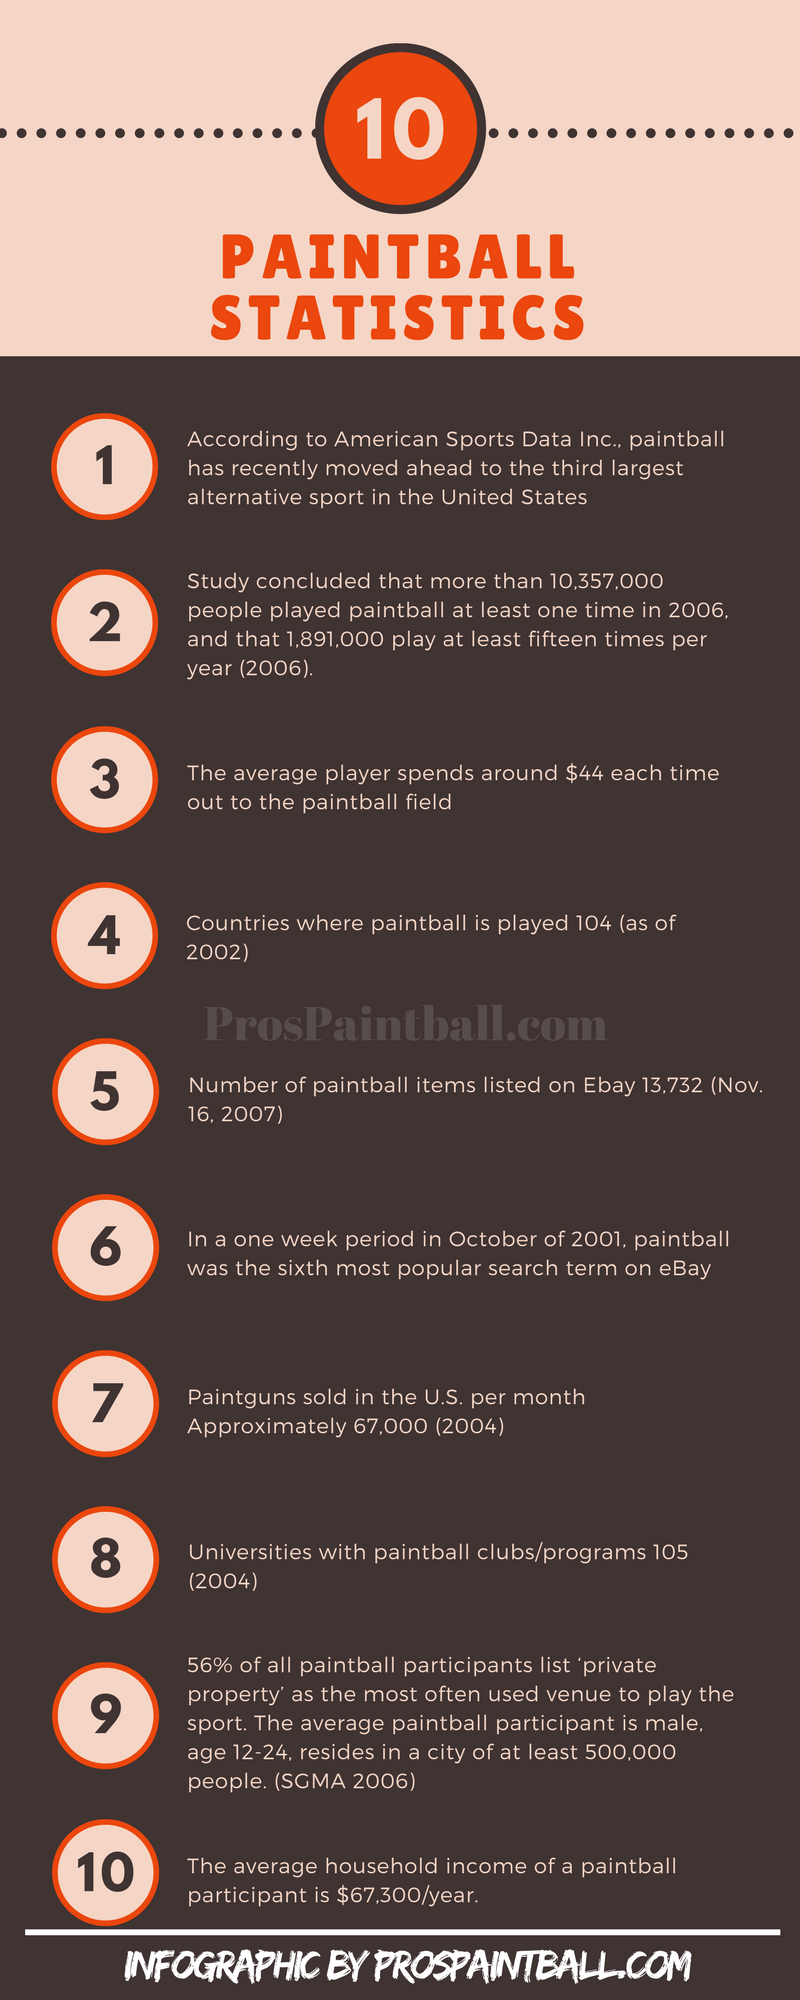 Paintball Facts By ProsPaintball